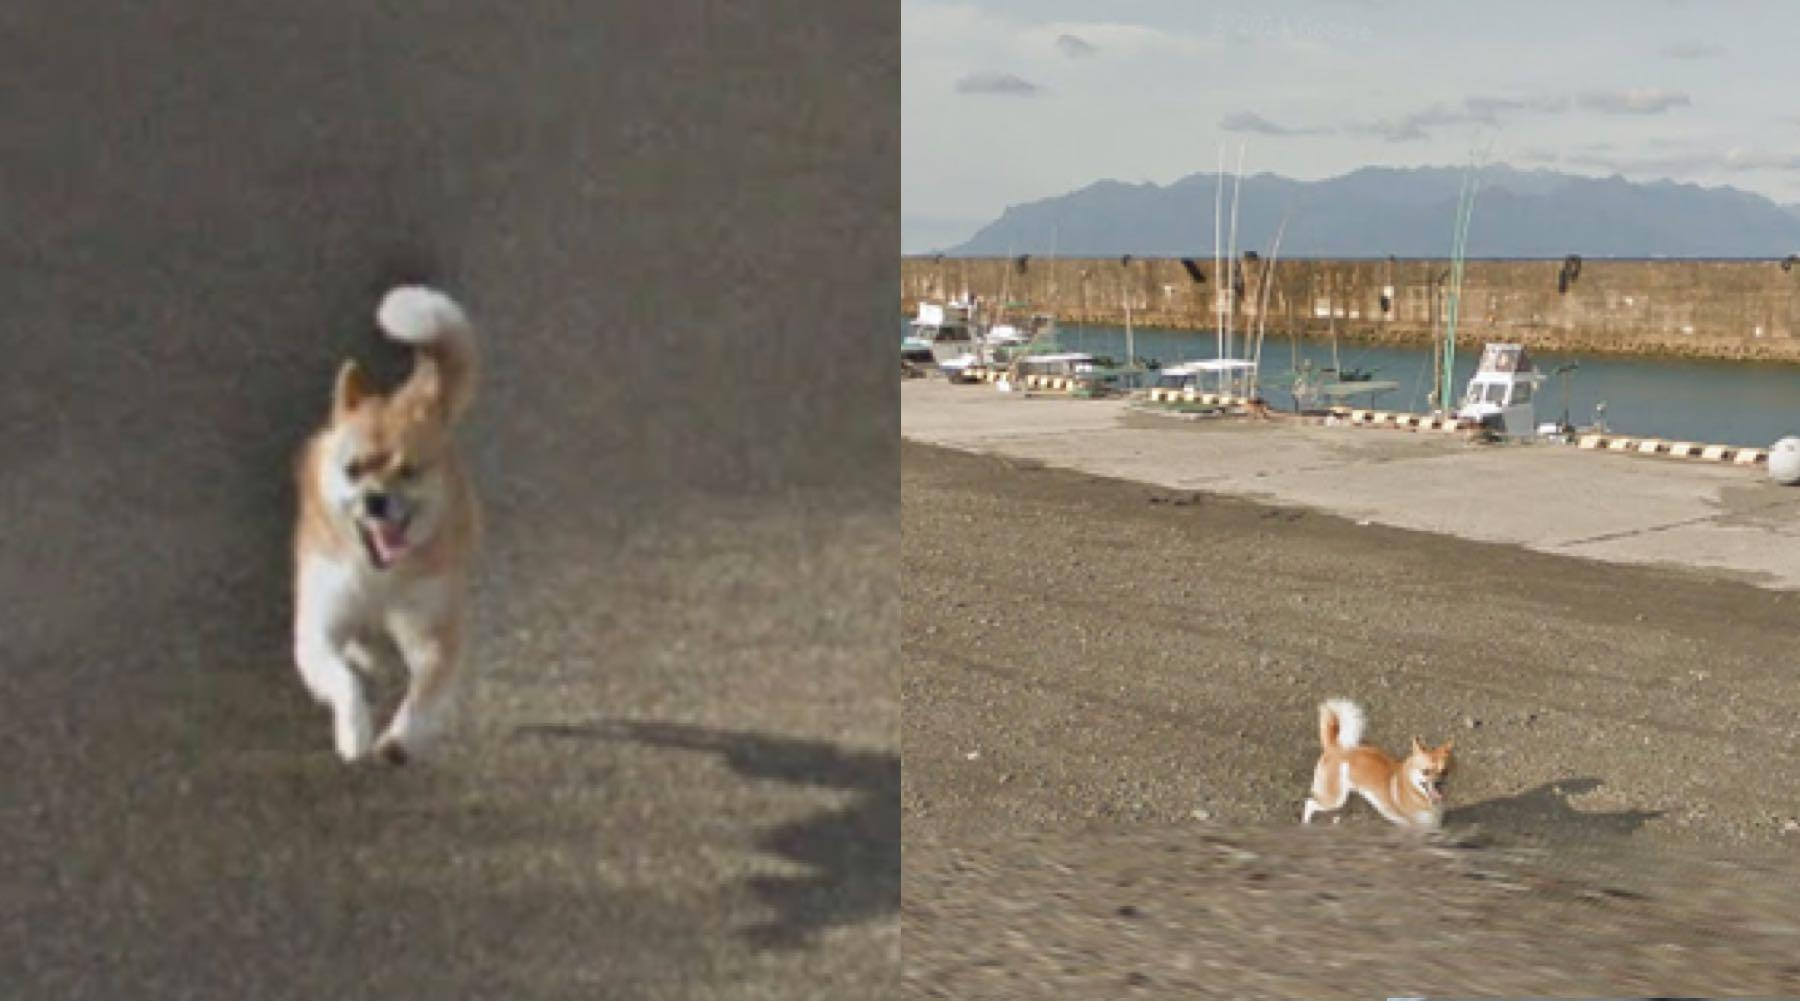 This little dog 'ruined' every frame of a Google Street View by chasing the camera